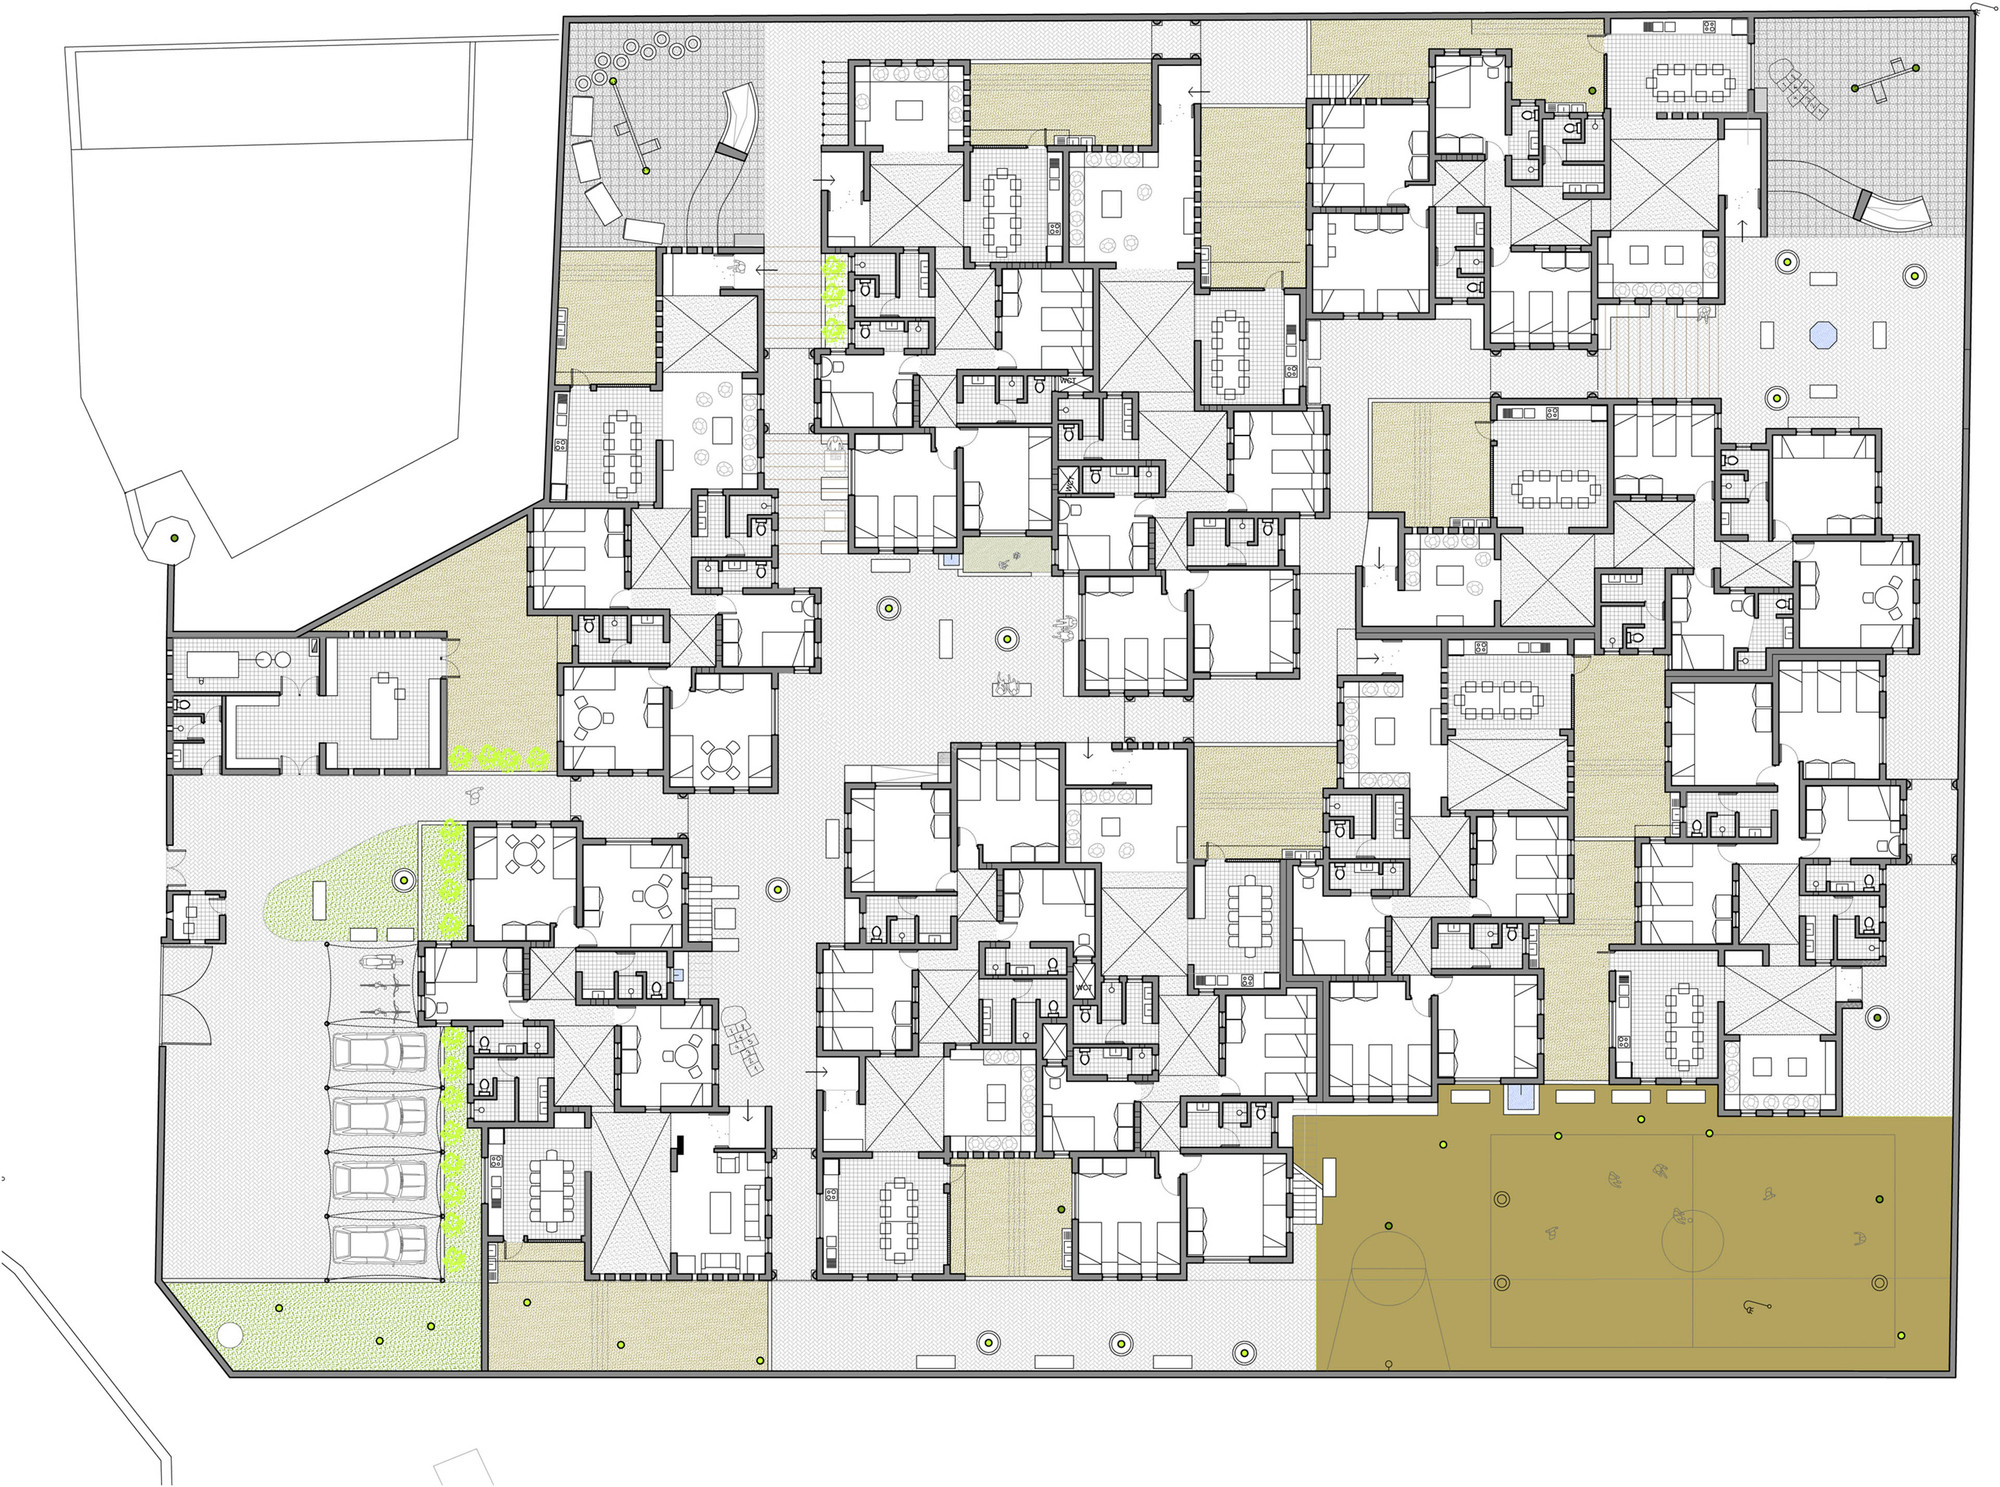 Gallery of sos children 39 s village in djibouti urko for Village style house plans